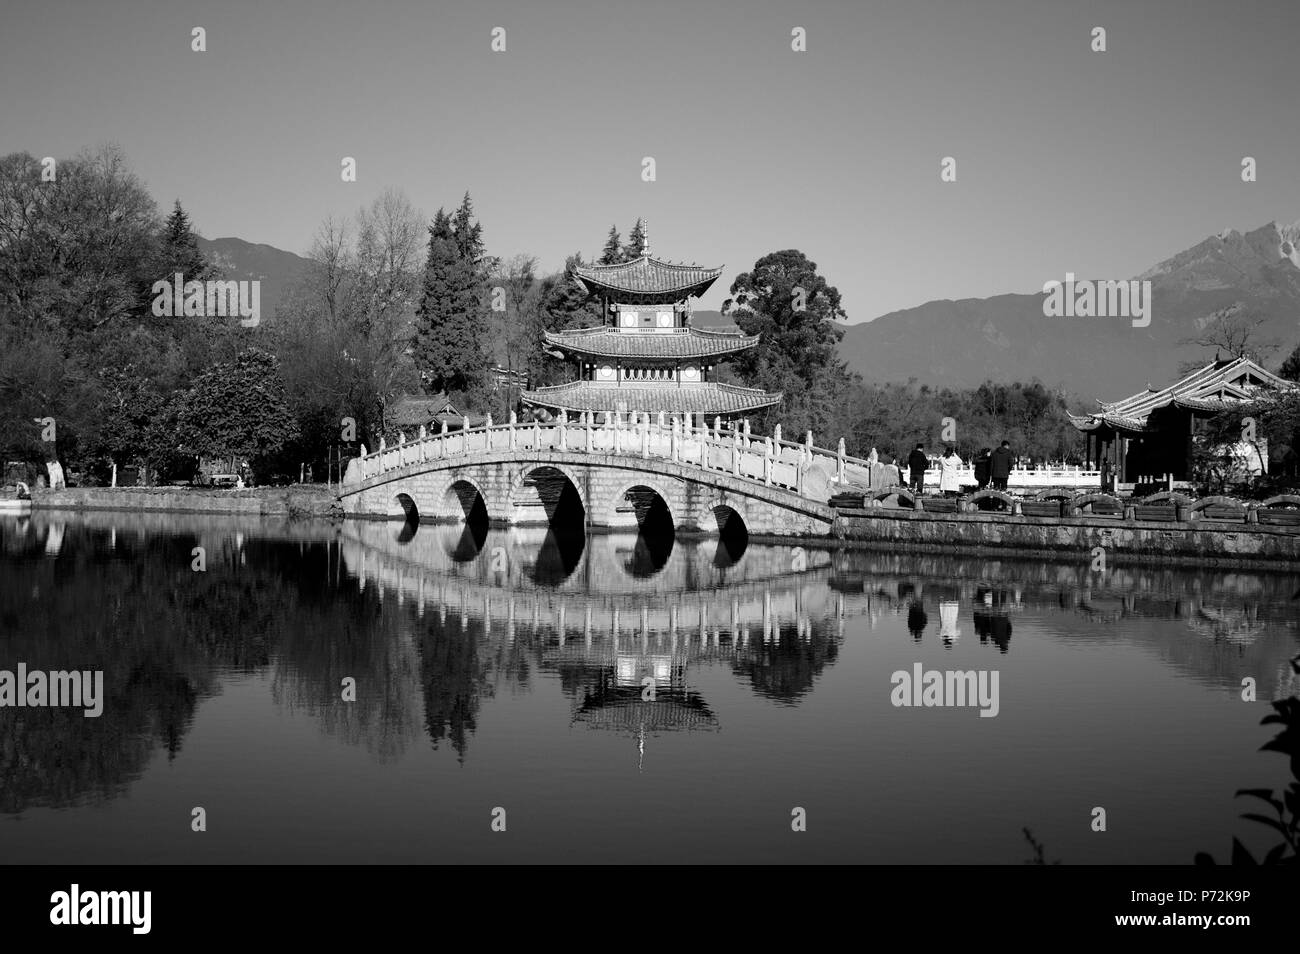 The bridge reflection of Black Dragon Pool (Lijiang, Yunnan, China) - Stock Image